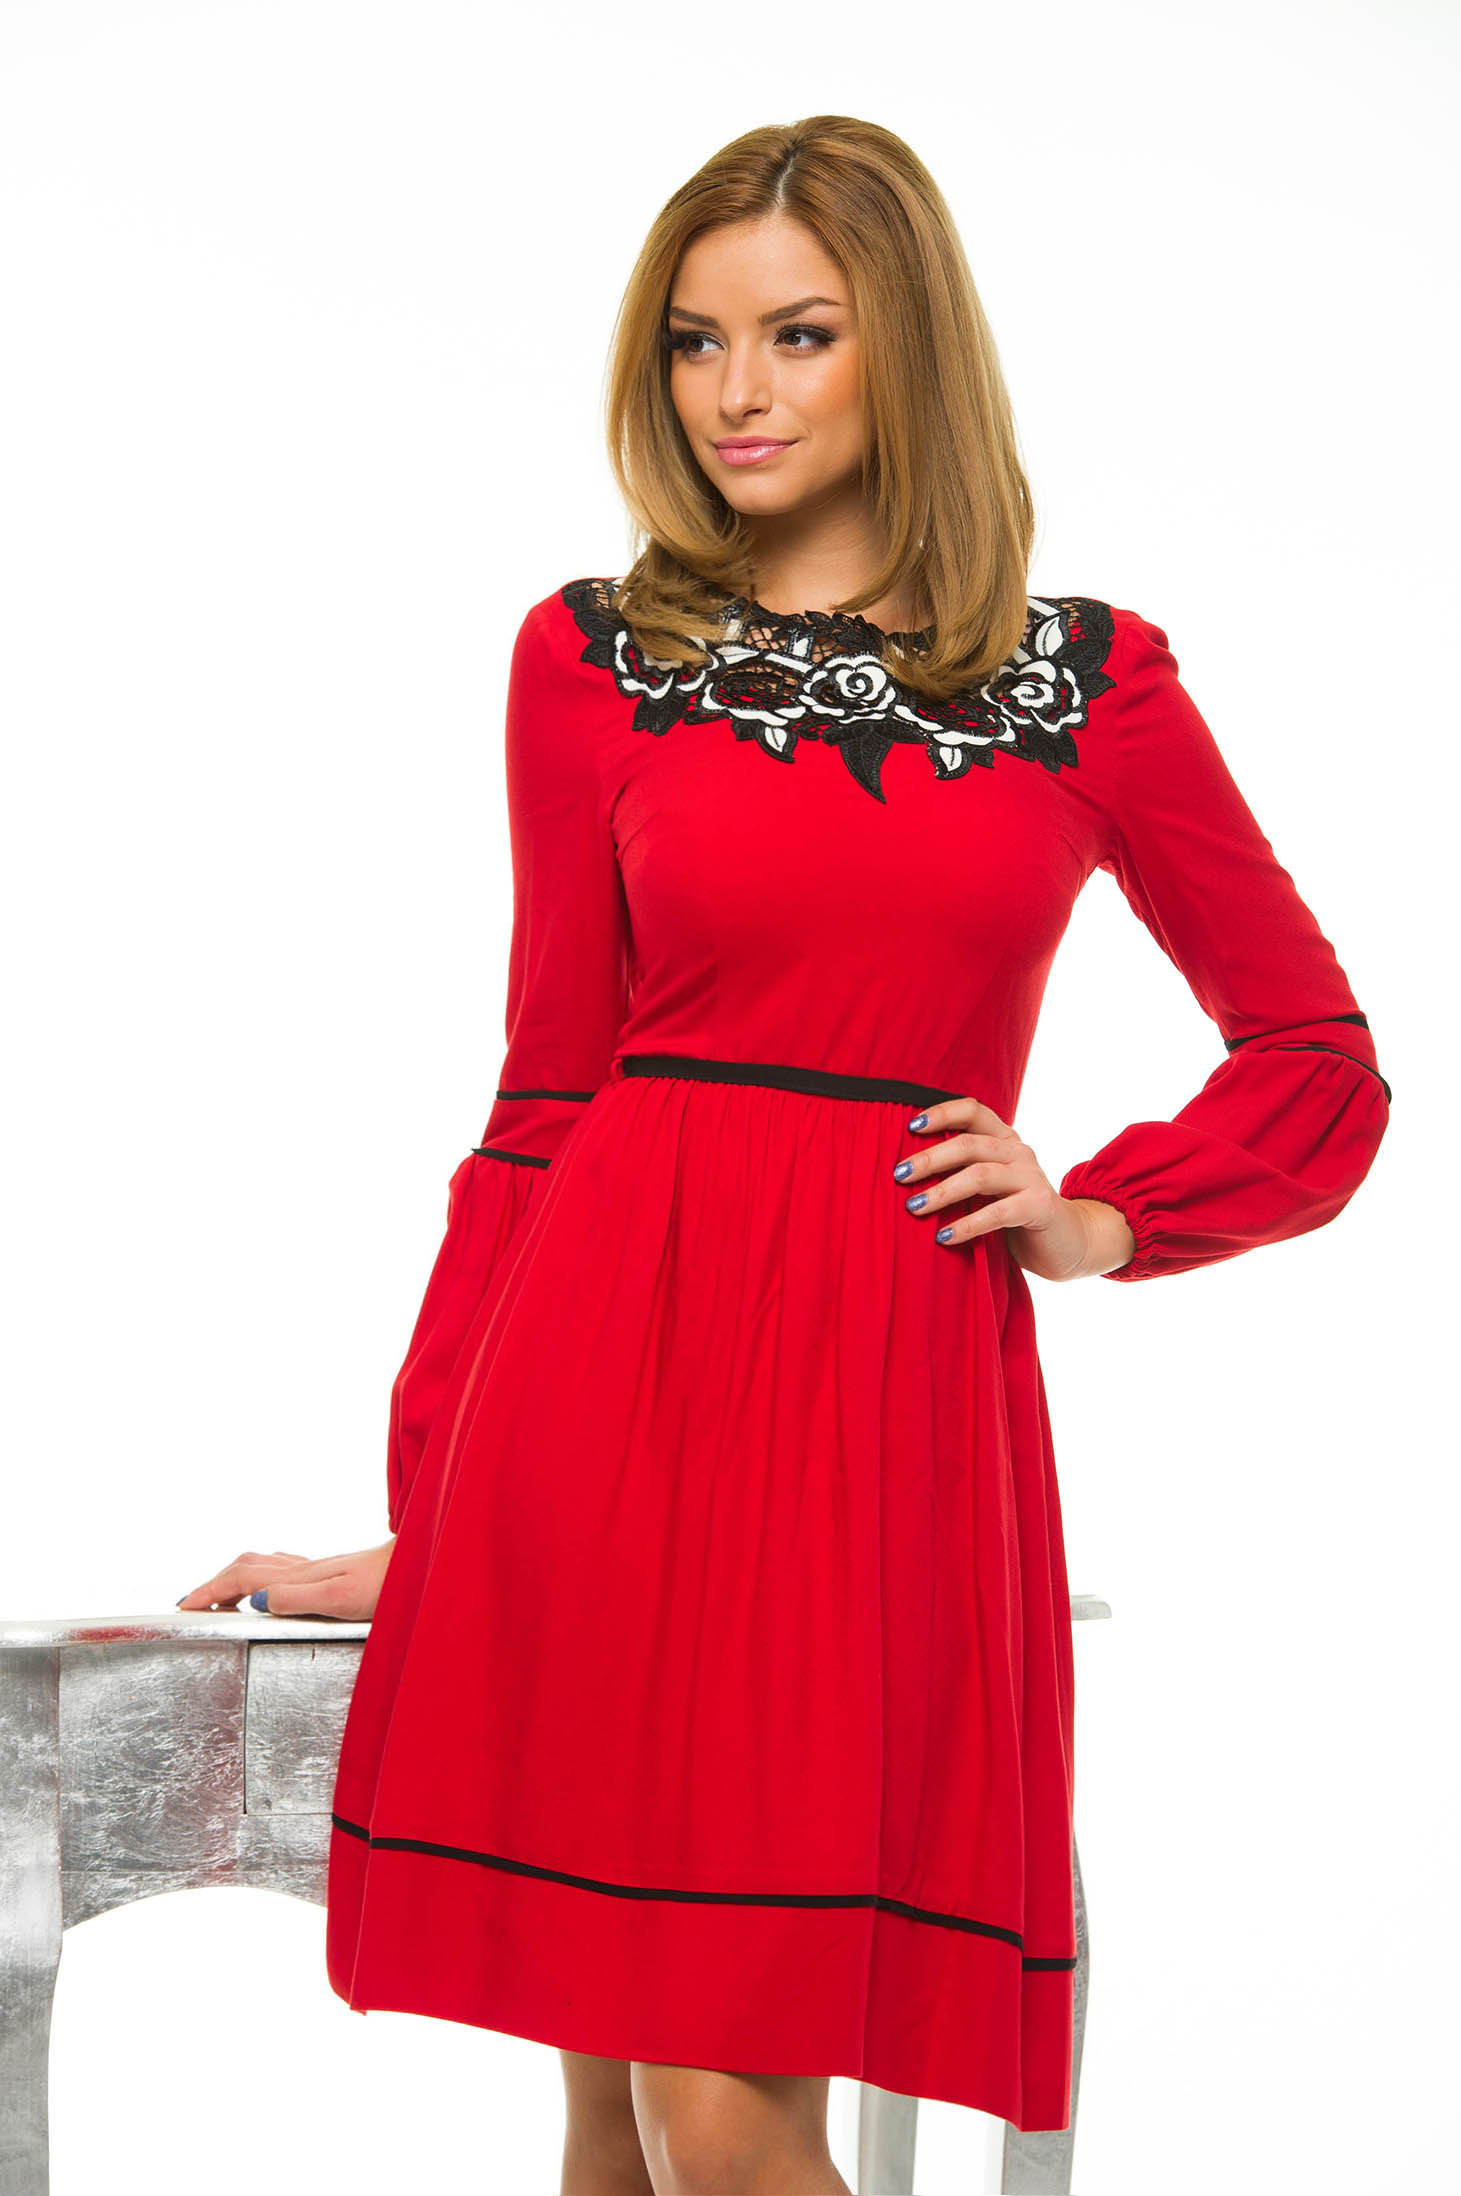 LaDonna Cleavage Roses Red Dress